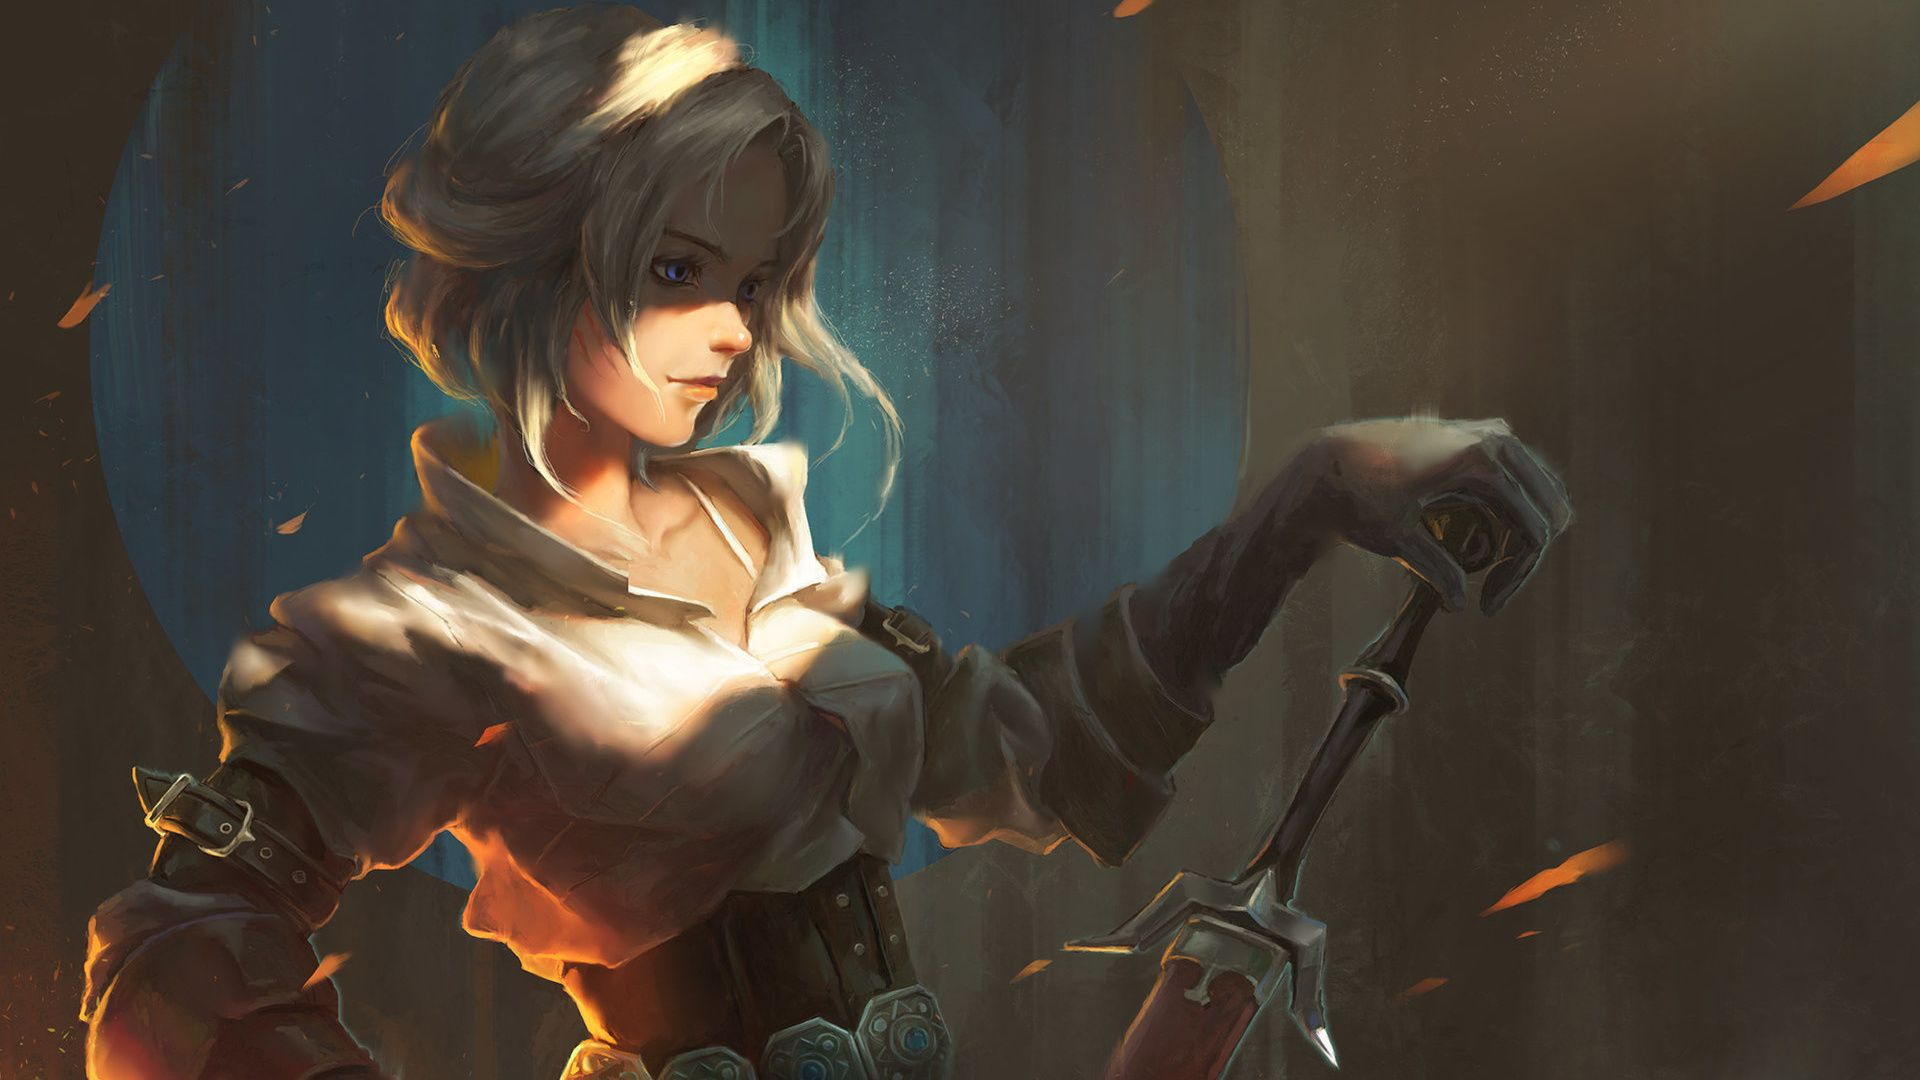 Wallpaper The Witcher 3 Ciri Painted Sword 1920x1080 The Witcher